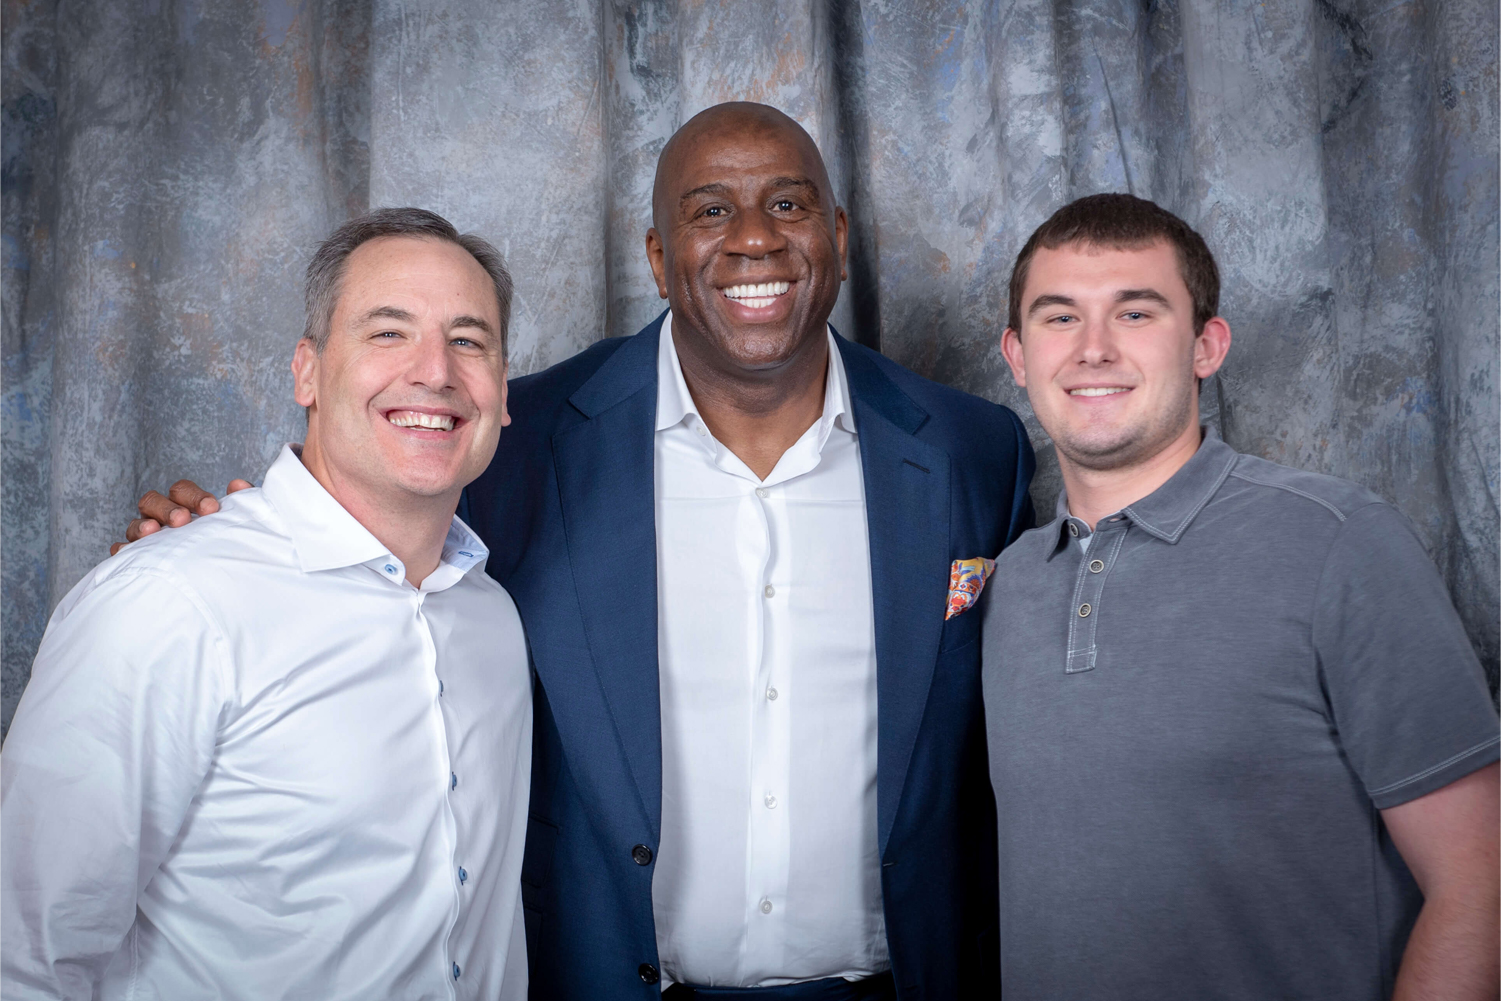 Group picture with Magic Johnson